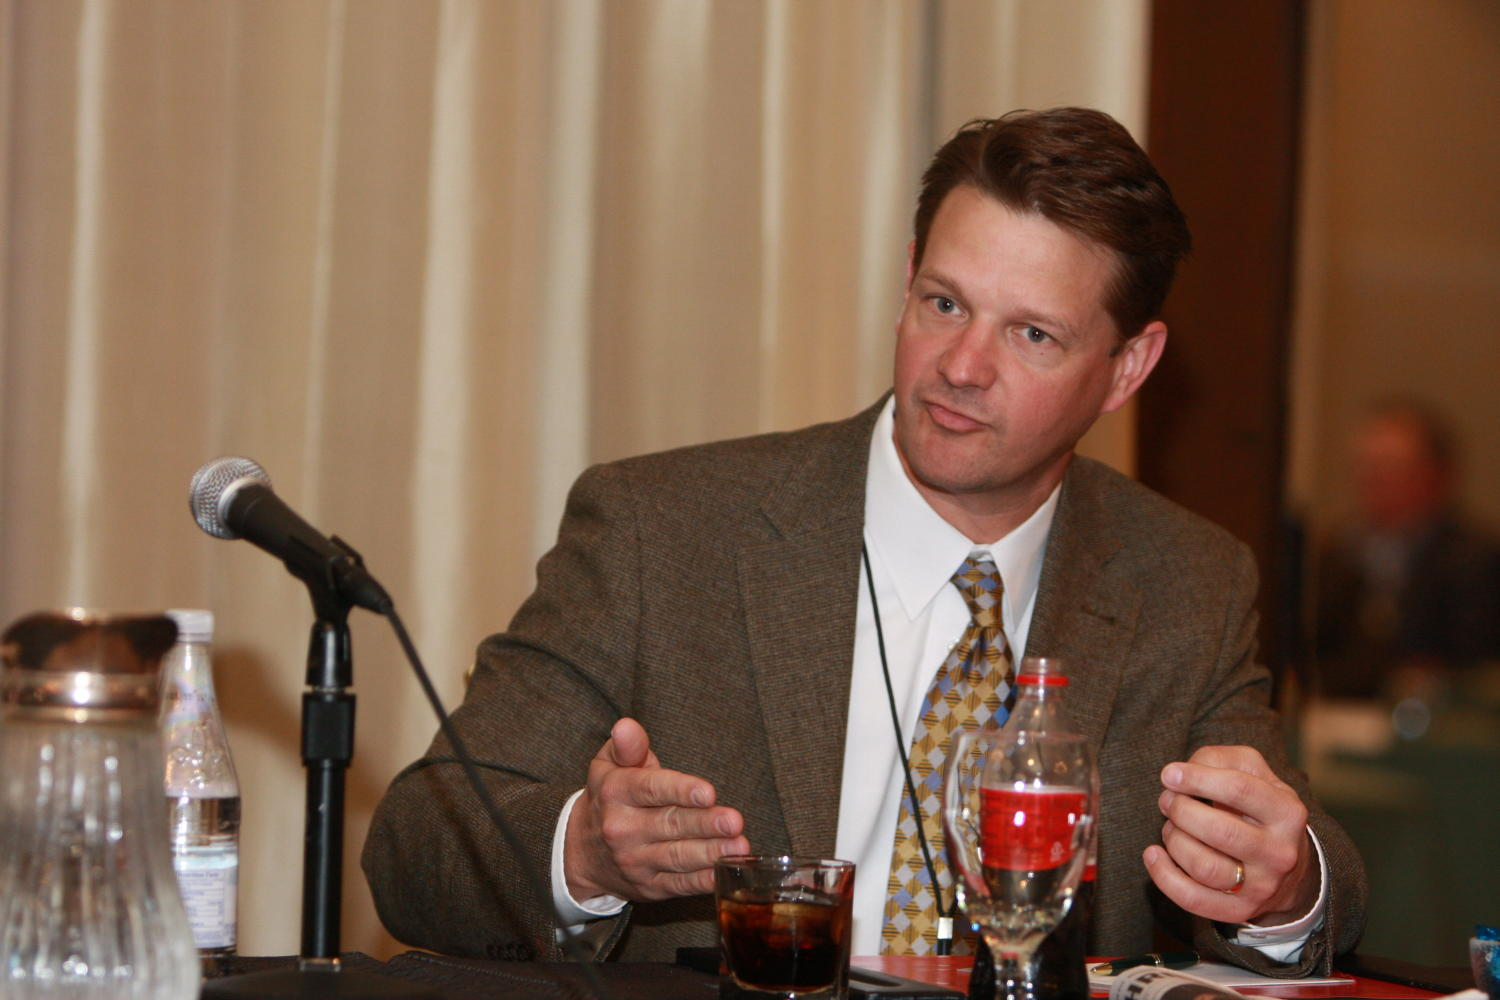 [Unidentified man seated at table during TDNA conference], Photograph of an unidentified man seated at a table with refreshments as he is attending the 2010 Texas Daily Newspaper Association annual meeting held in Houston, Texas.,